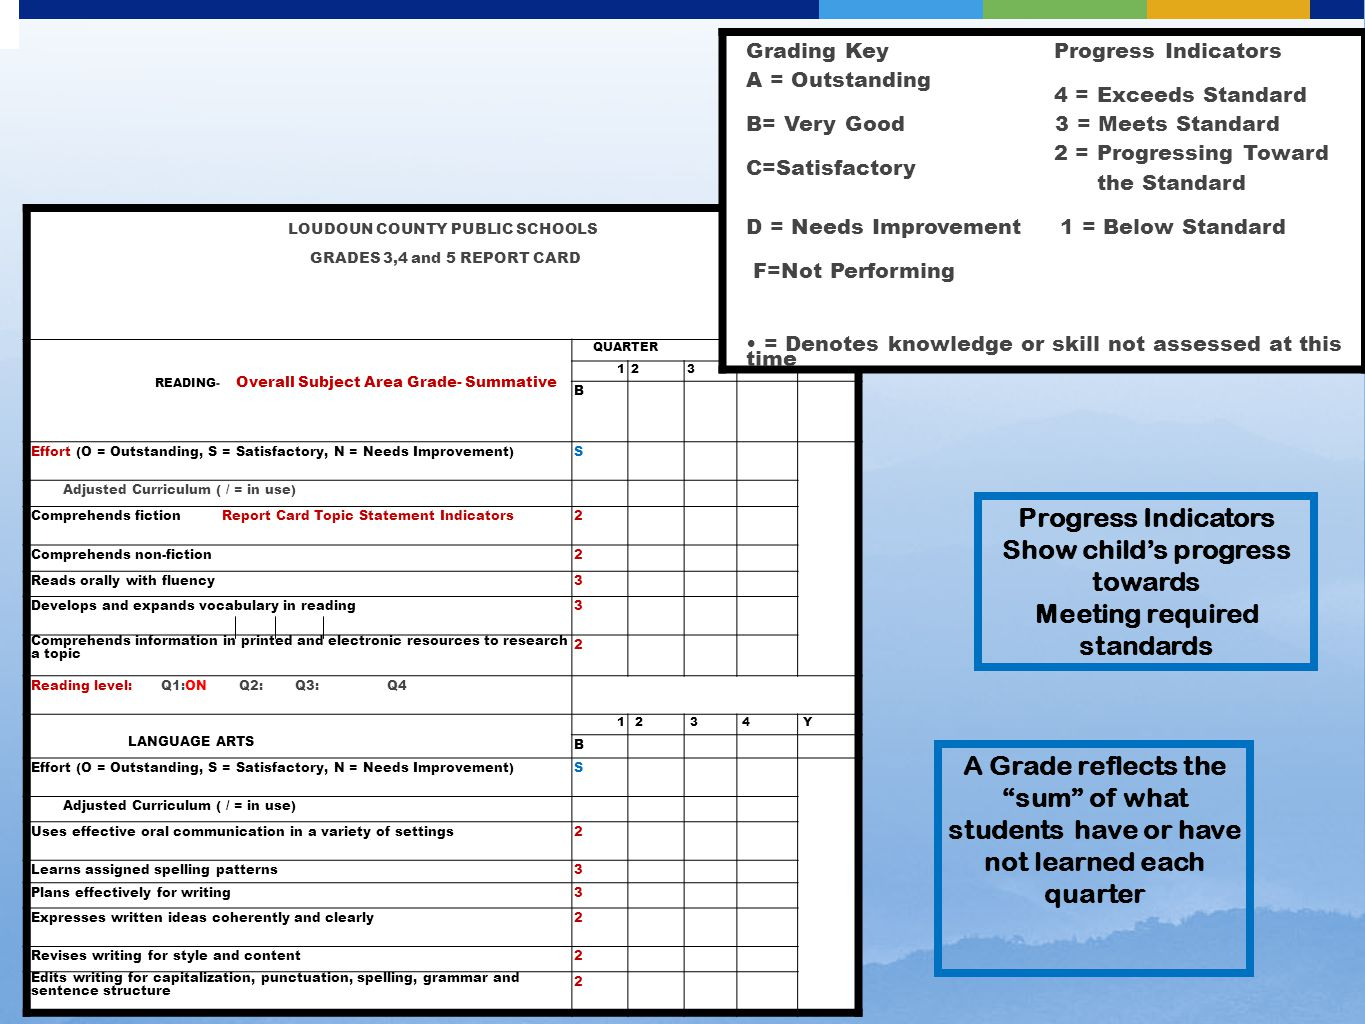 LOUDOUN COUNTY PUBLIC SCHOOLS GRADES 3,4 and 5 REPORT CARD READING- Overall Subject Area Grade- Summative QUARTER 1234Y B Effort (O = Outstanding, S = Satisfactory, N = Needs Improvement)S Adjusted Curriculum ( / = in use) Comprehends fiction Report Card Topic Statement Indicators2 Comprehends non-fiction2 Reads orally with fluency3 Develops and expands vocabulary in reading3 Comprehends information in printed and electronic resources to research a topic 2 Reading level: Q1:ON Q2: Q3: Q4 LANGUAGE ARTS 1234Y B Effort (O = Outstanding, S = Satisfactory, N = Needs Improvement)S Adjusted Curriculum ( / = in use) Uses effective oral communication in a variety of settings2 Learns assigned spelling patterns3 Plans effectively for writing3 Expresses written ideas coherently and clearly2 Revises writing for style and content2 Edits writing for capitalization, punctuation, spelling, grammar and sentence structure 2 Grading Key Progress Indicators A = Outstanding 4 = Exceeds Standard B= Very Good 3 = Meets Standard 2 = Progressing Toward C=Satisfactory the Standard D = Needs Improvement 1 = Below Standard F=Not Performing = Denotes knowledge or skill not assessed at this time Progress Indicators Show child's progress towards Meeting required standards A Grade reflects the sum of what students have or have not learned each quarter